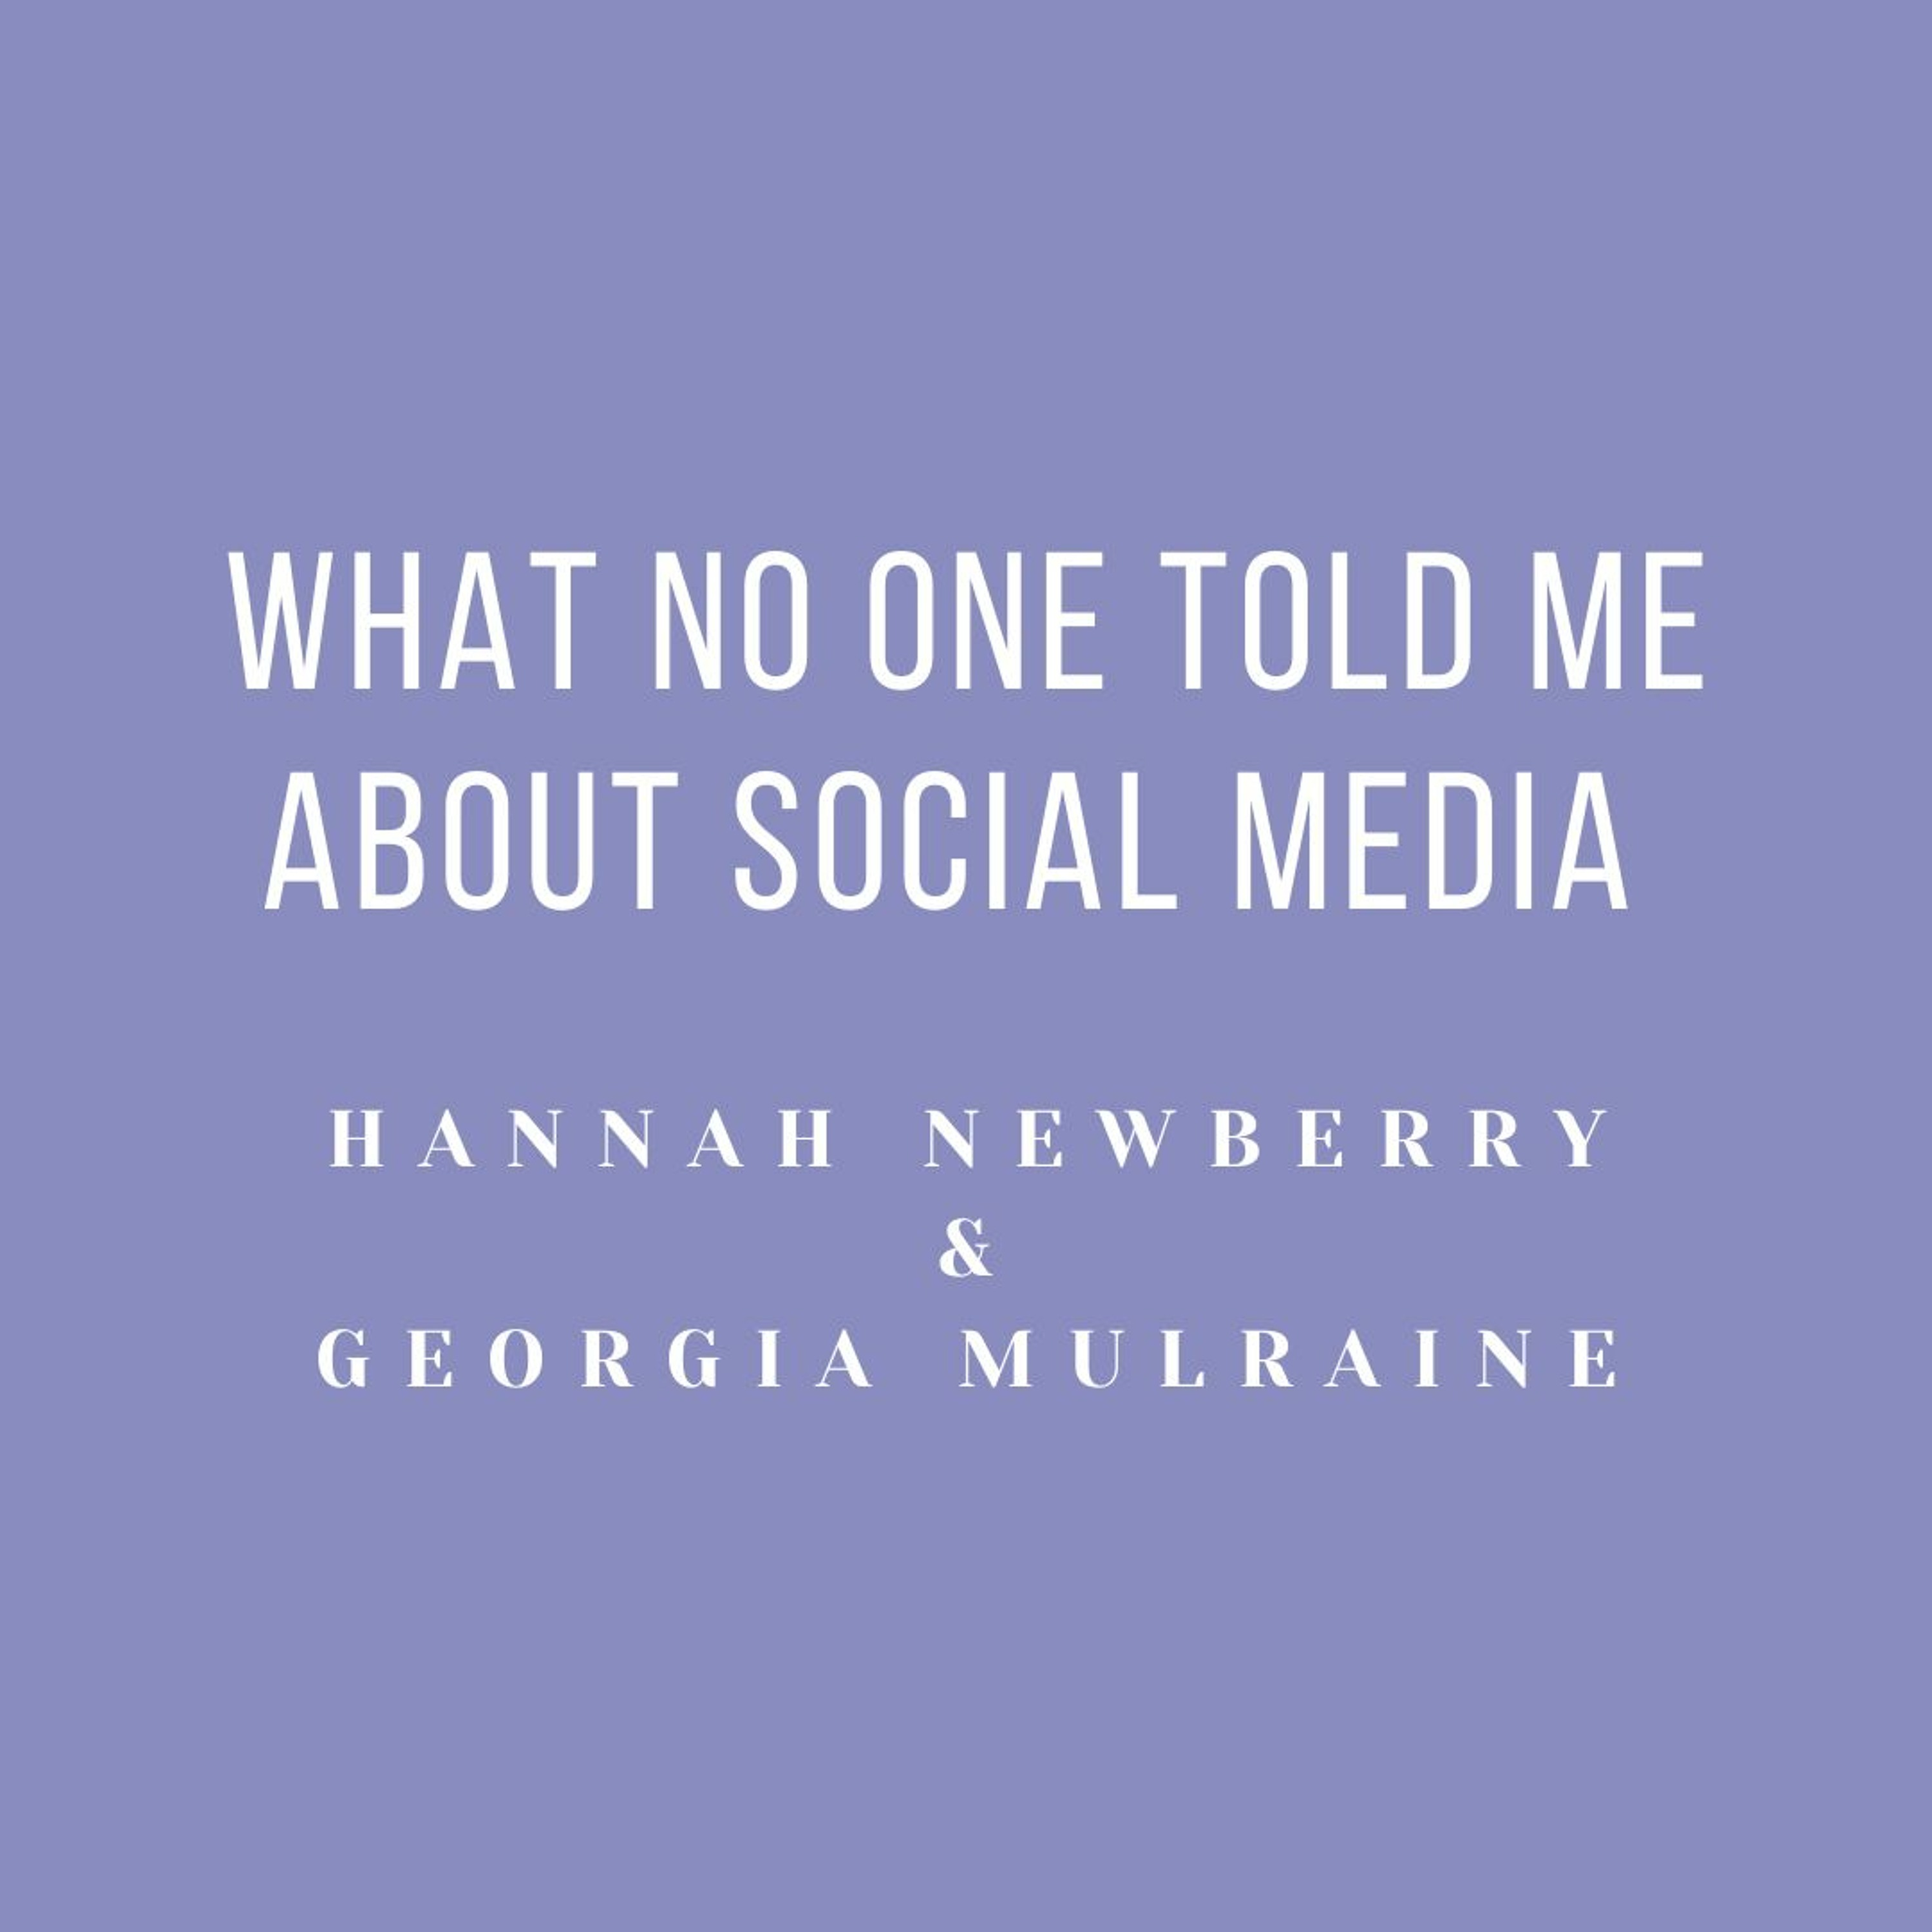 What no one told me about growing up with social media